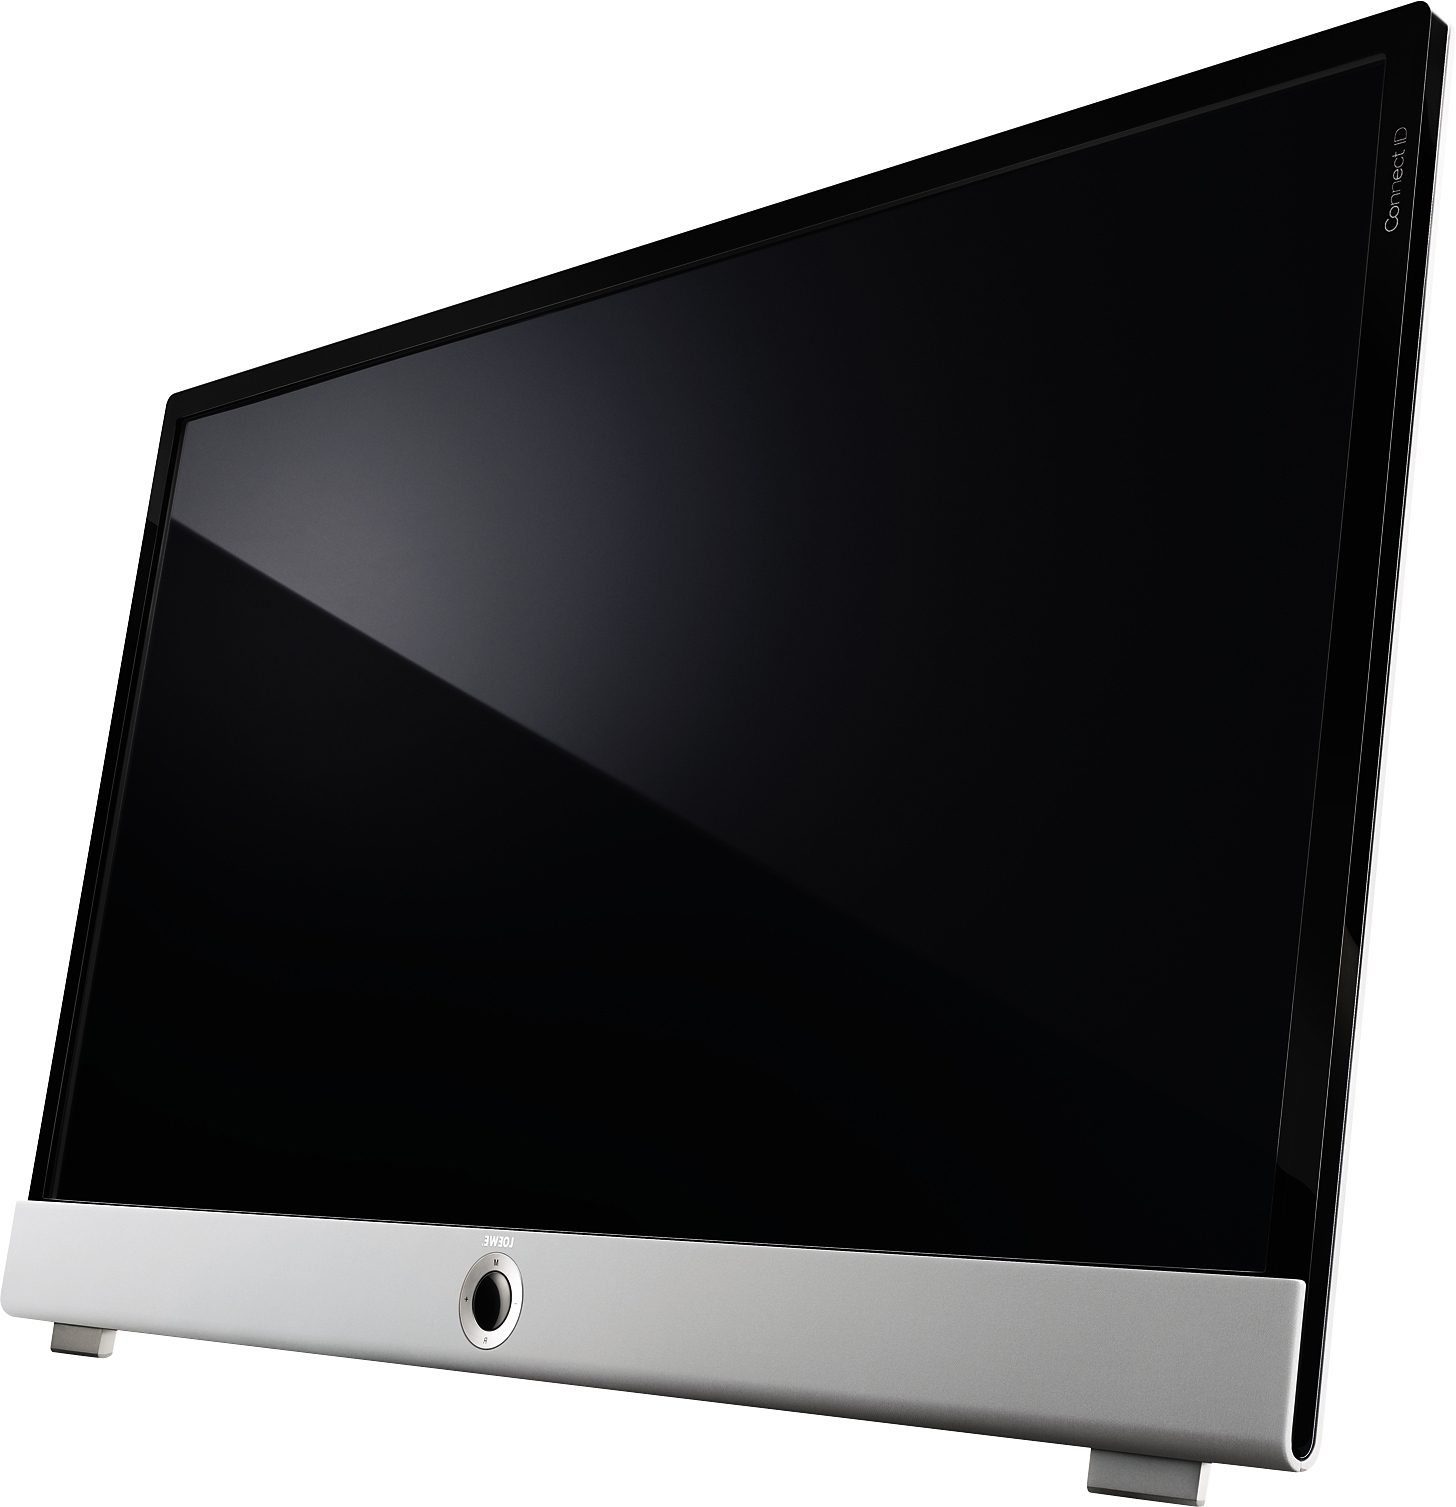 Loewe Connect ID 46 DR+, LED Fernseher, 117 cm (46 Zoll), 1080p (Full HD)